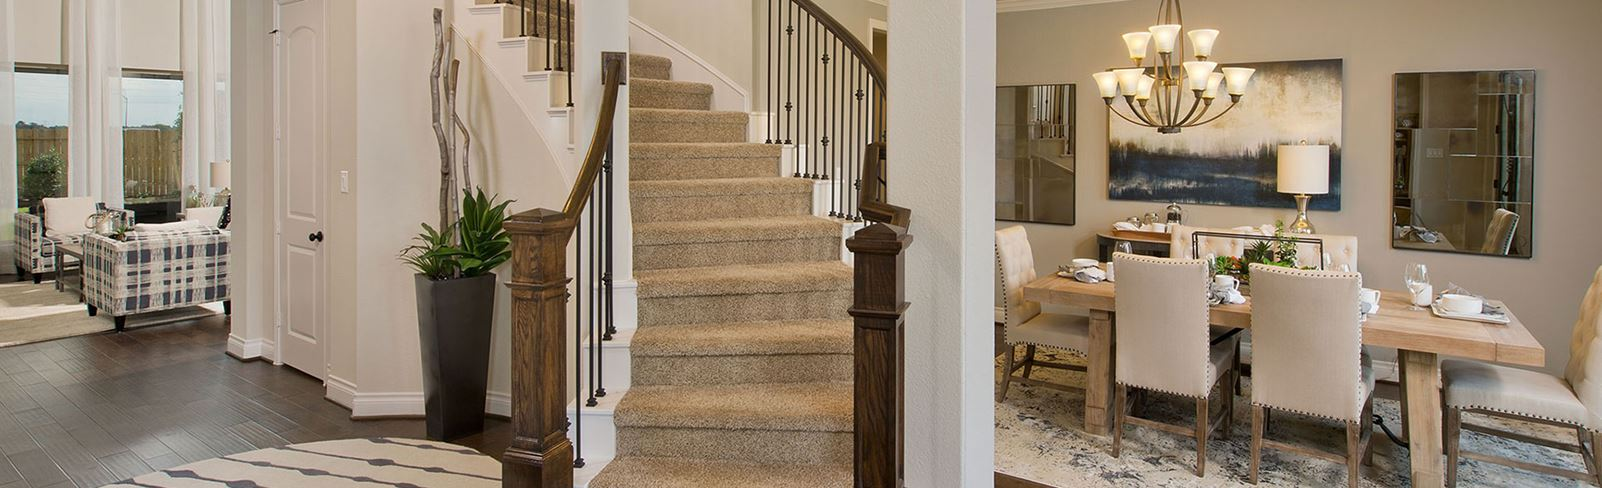 Perry Homes Model Home In Elyson Community Katy Tx